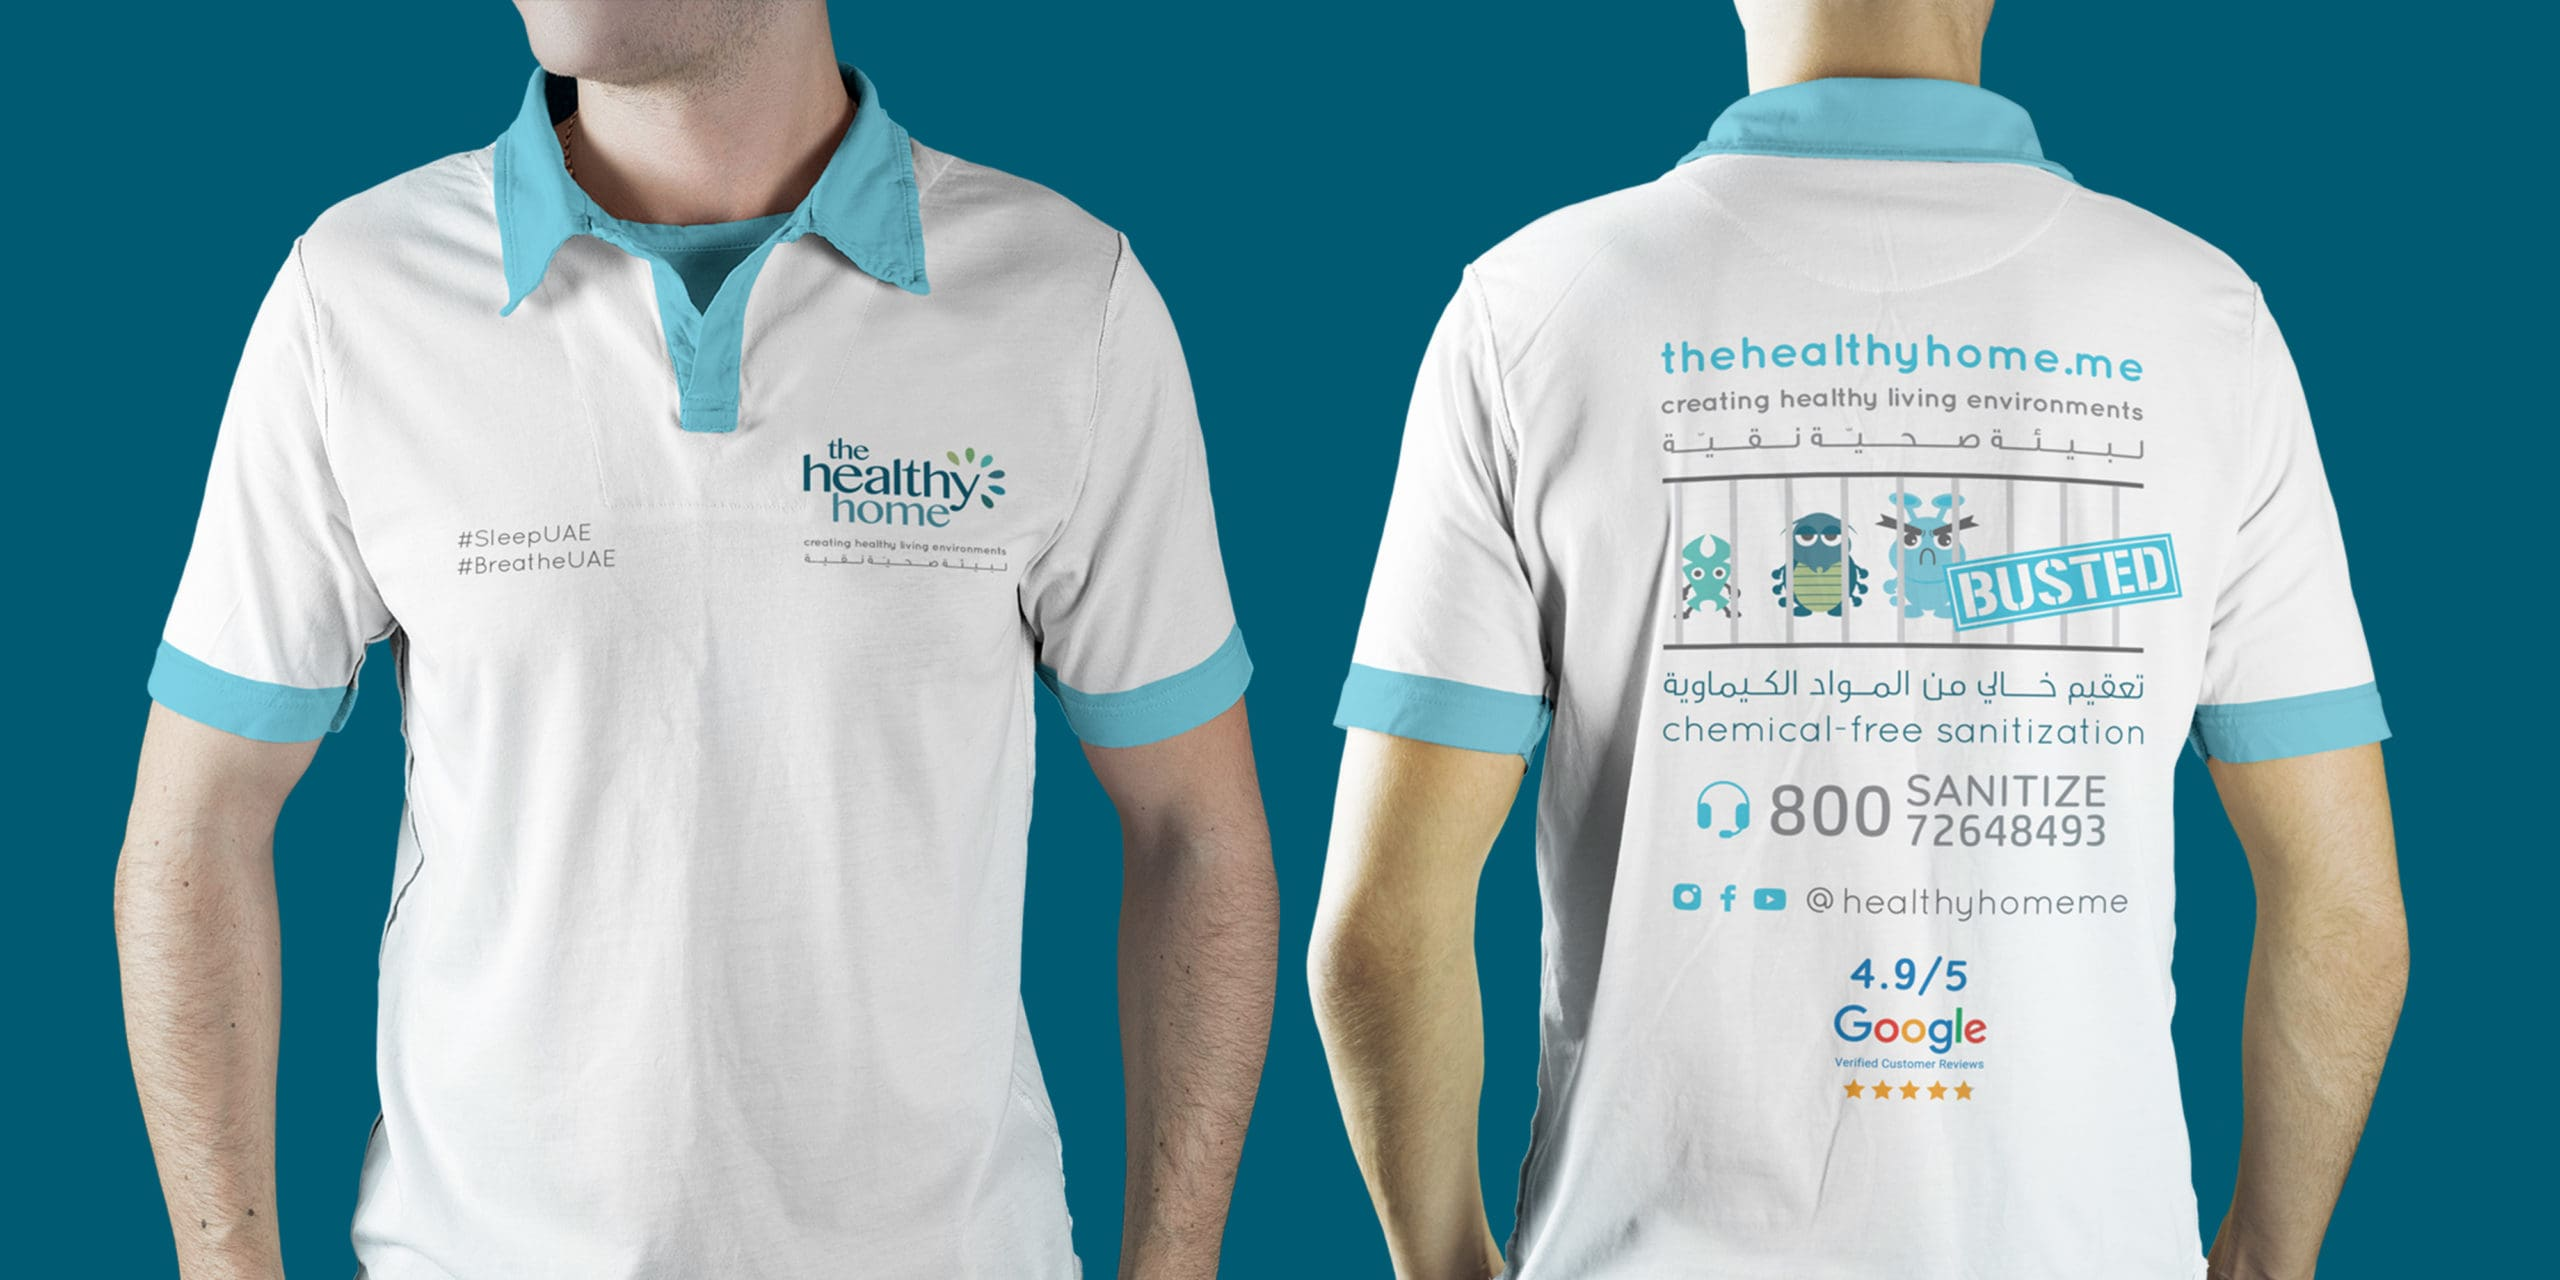 Thehealthyhome_Shirt_Design